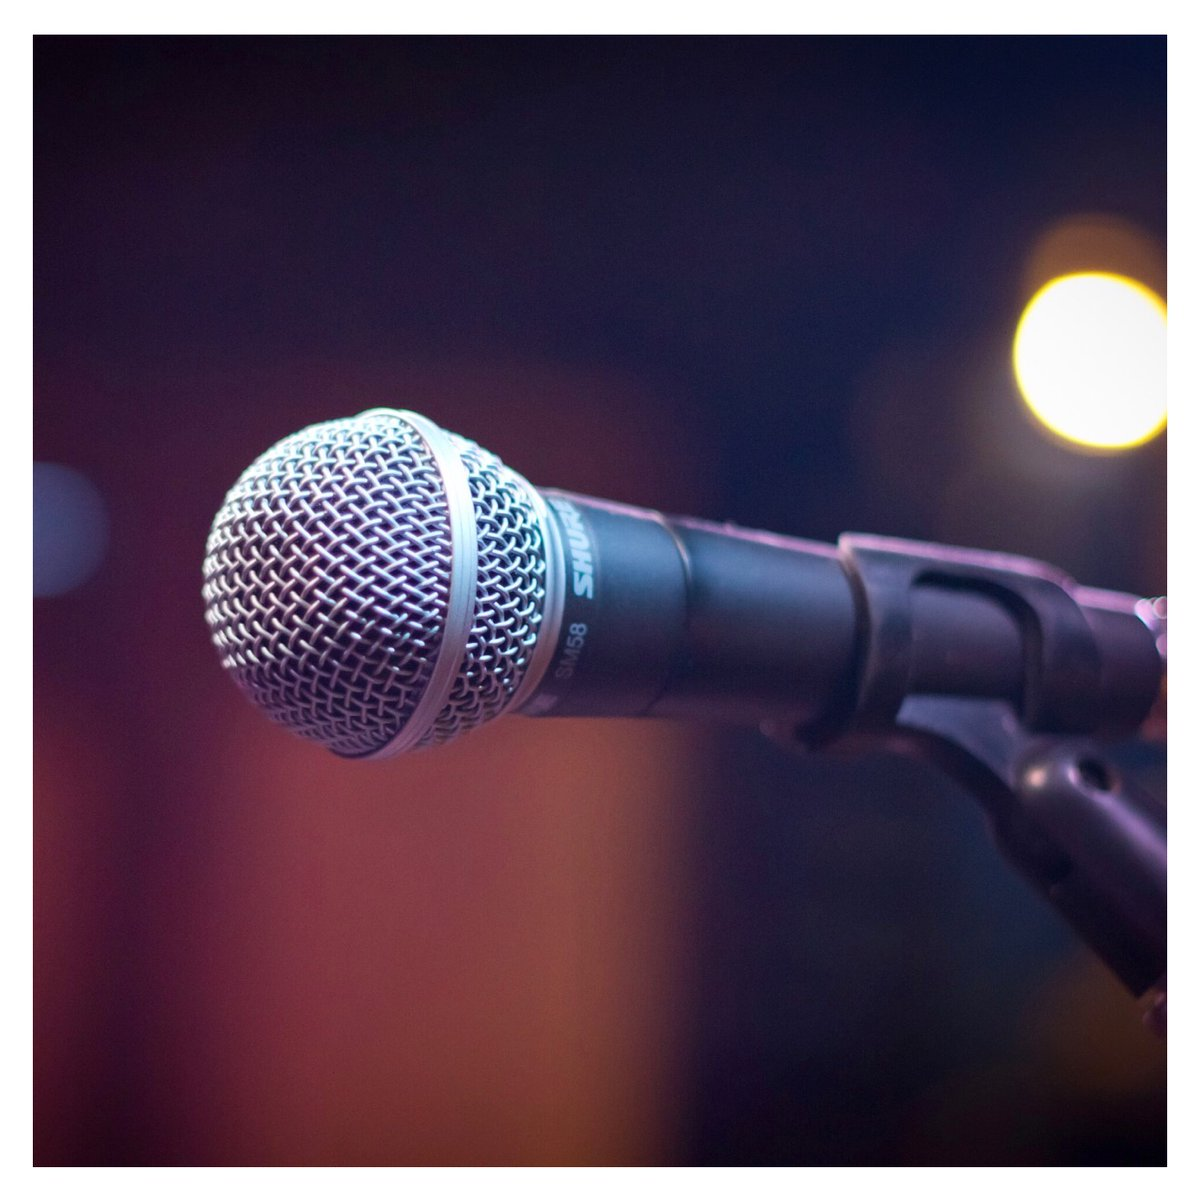 LIVE ACOUSTIC MUSIC EVERY SATURDAY & SUNDAY 3-5PM  THIS WEEKEND:   Saturday - Ryan Hawkins  Sunday - Rolling Keys Duo